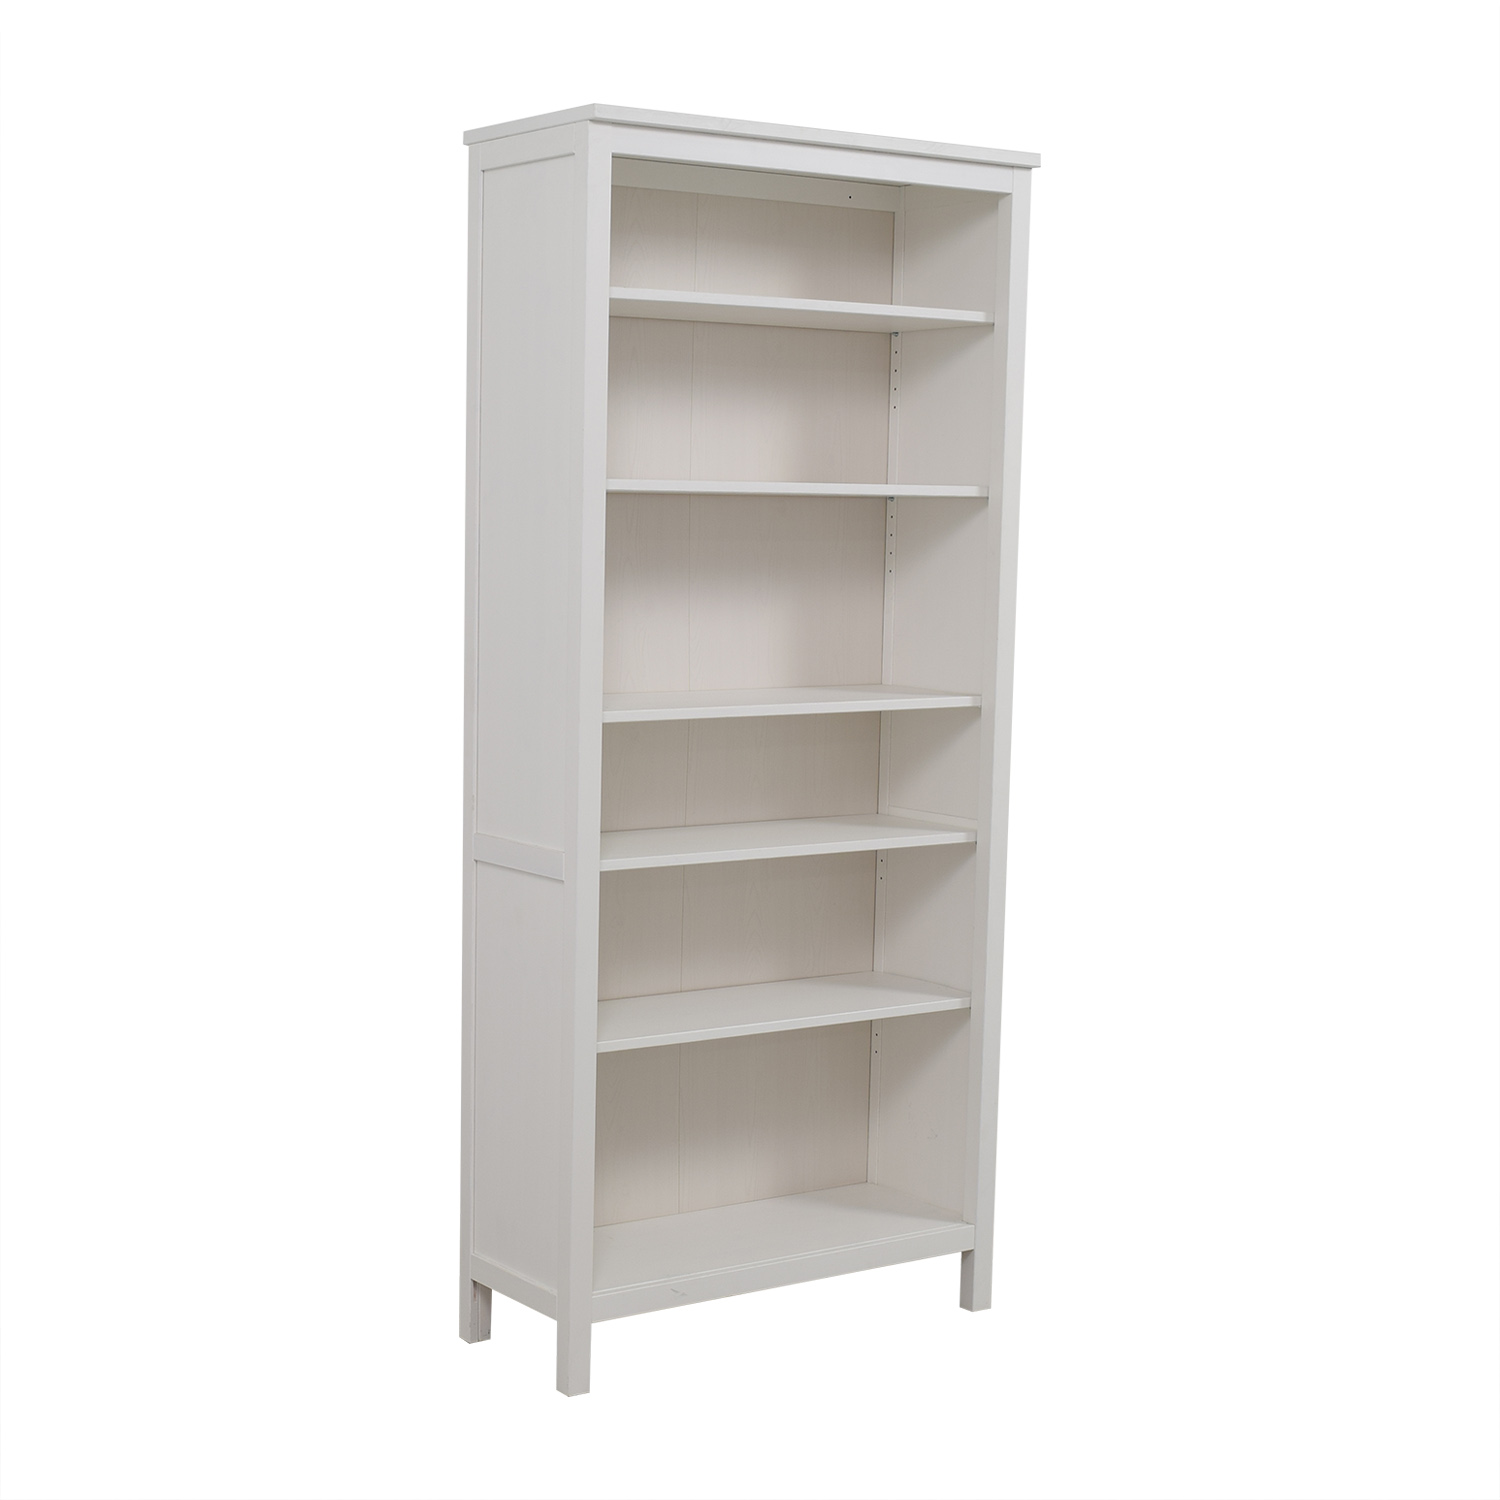 Ikea Hemnes Schuhschrank Hemnes Shoe Cabinet With 2 Compartments White Ikea Hemnes Shoe